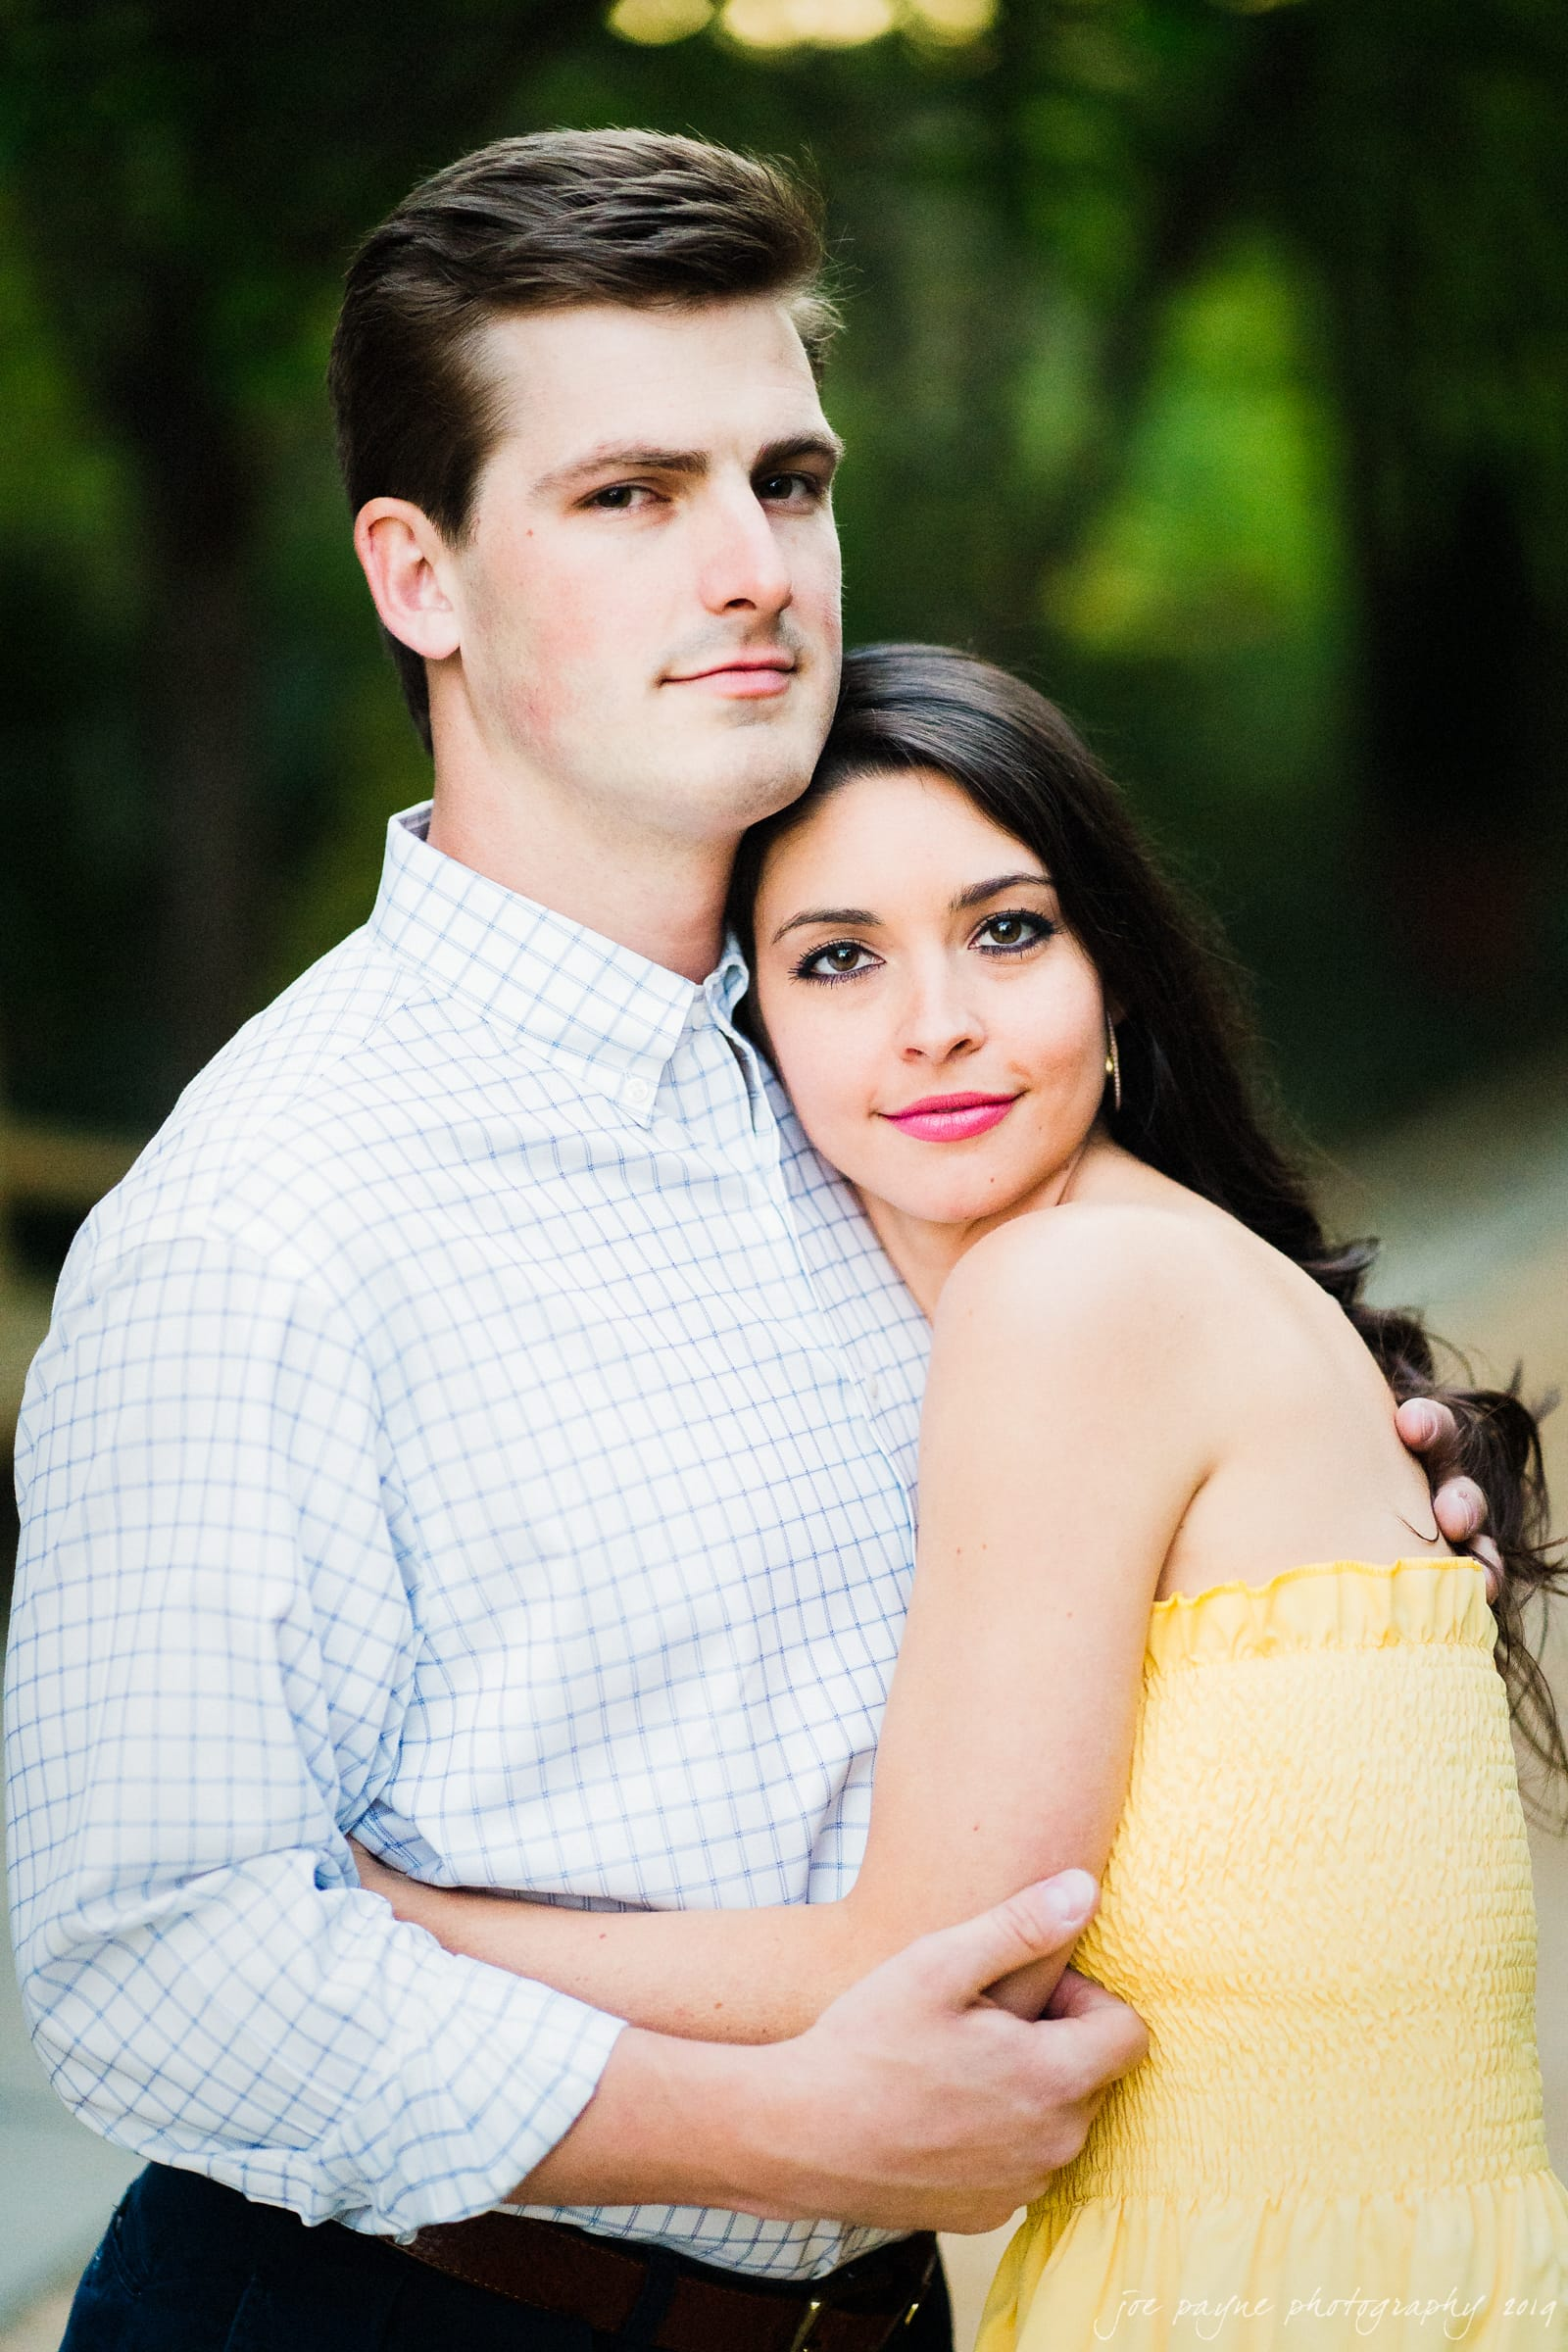 duke gardens engagement photography nikki john 25